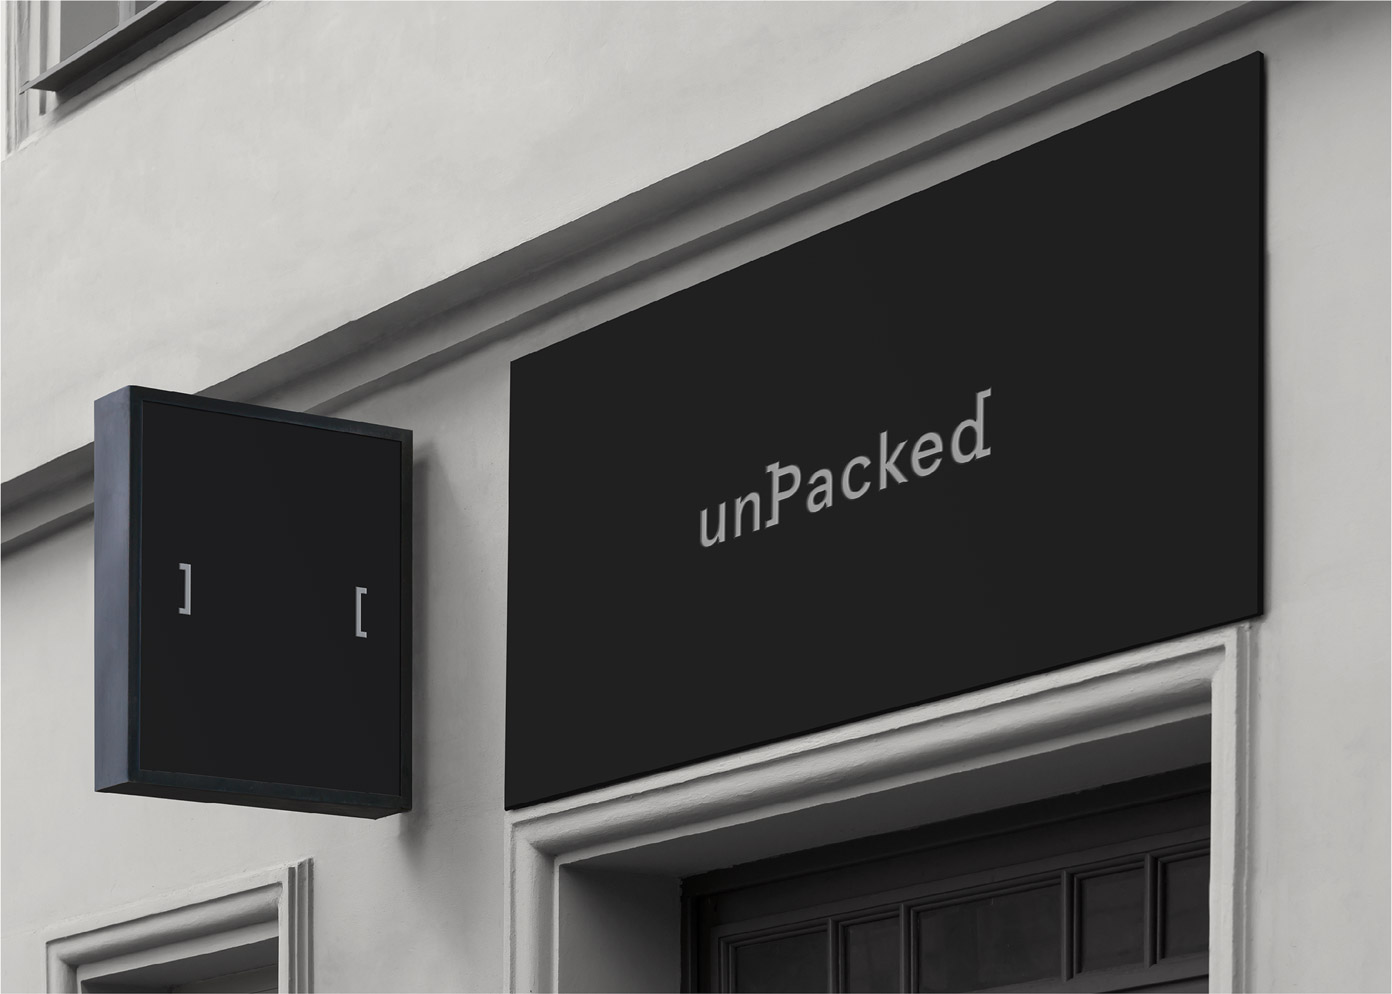 Branding, graphic design, and packaging by fagerström for unPacked.